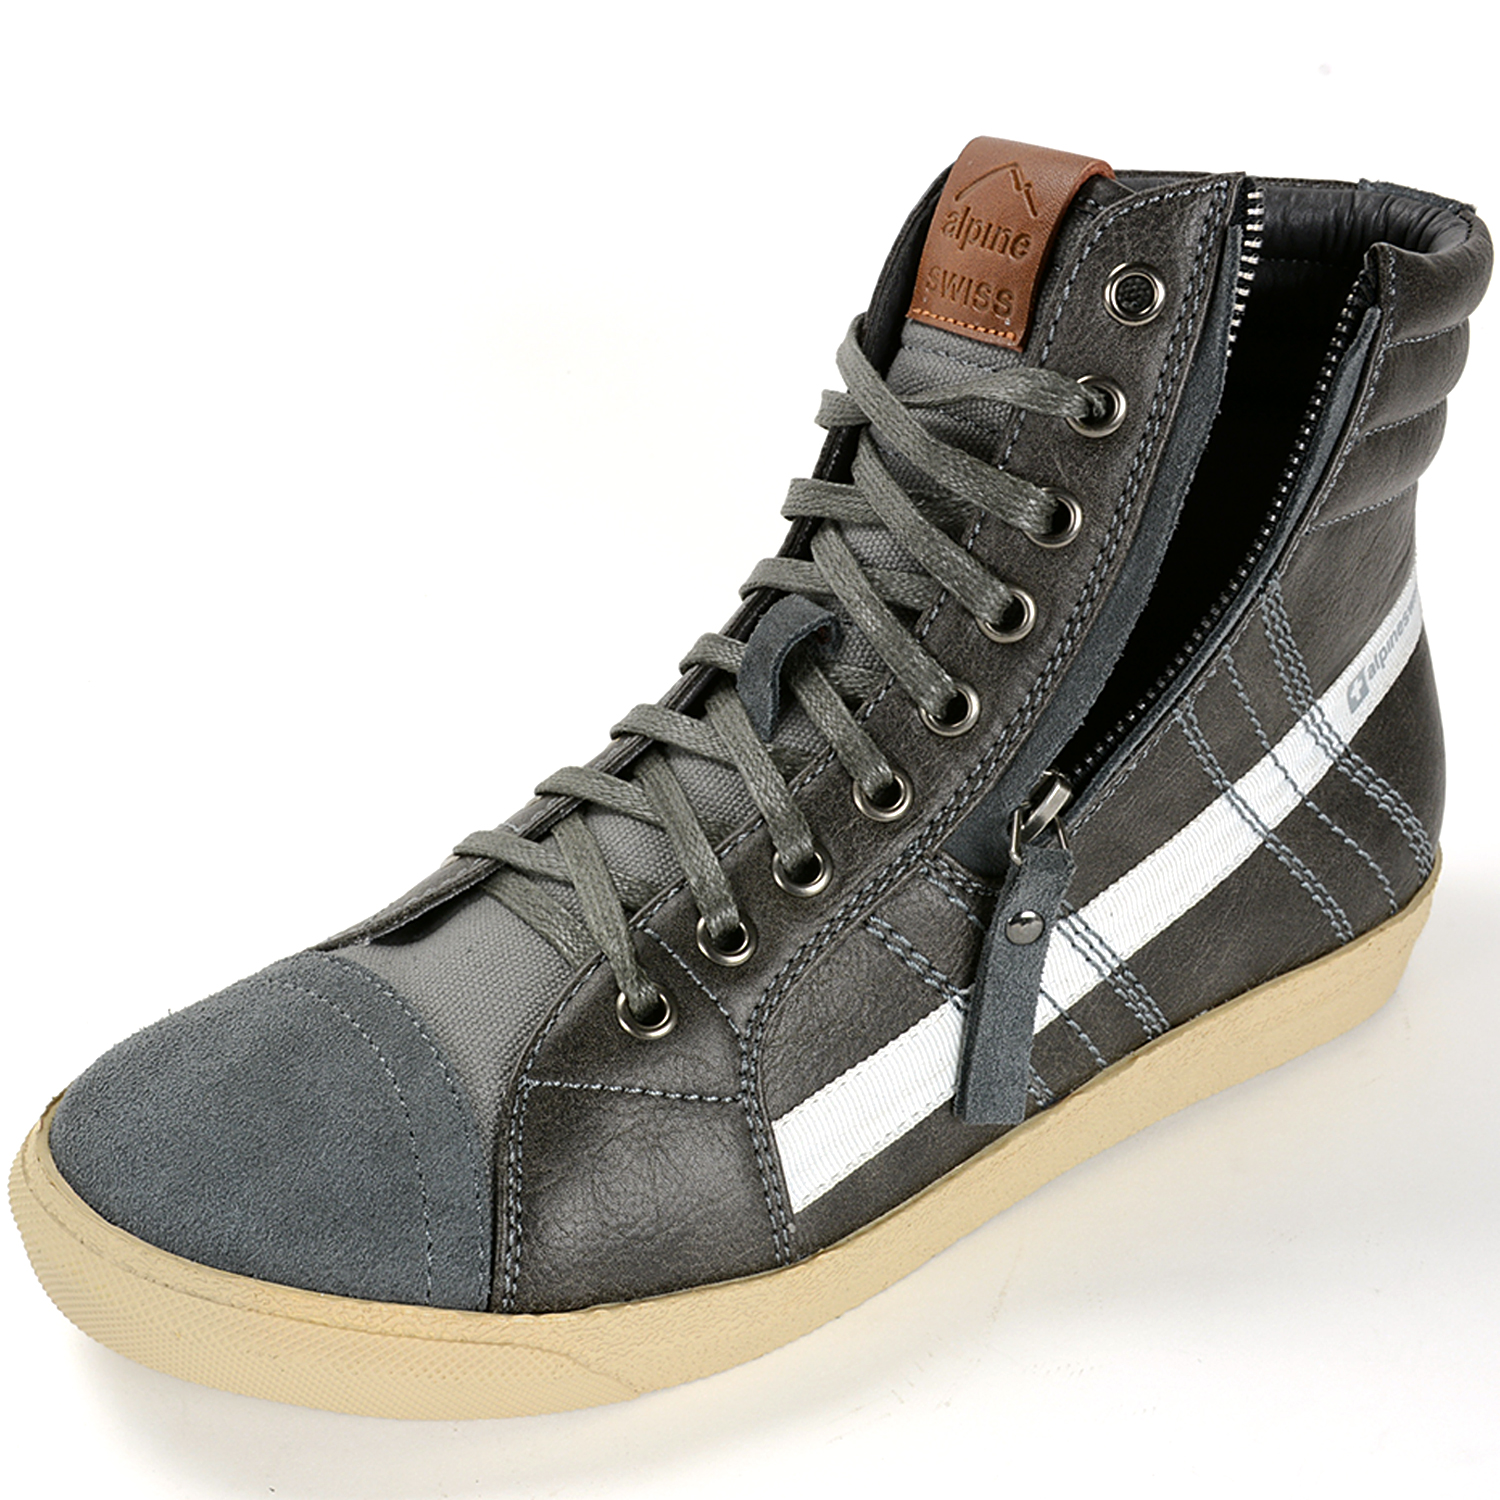 Alpine Swiss Reto Mens High Top Sneakers Lace Up U0026 Zip Ankle Boots Fashion Shoes | EBay